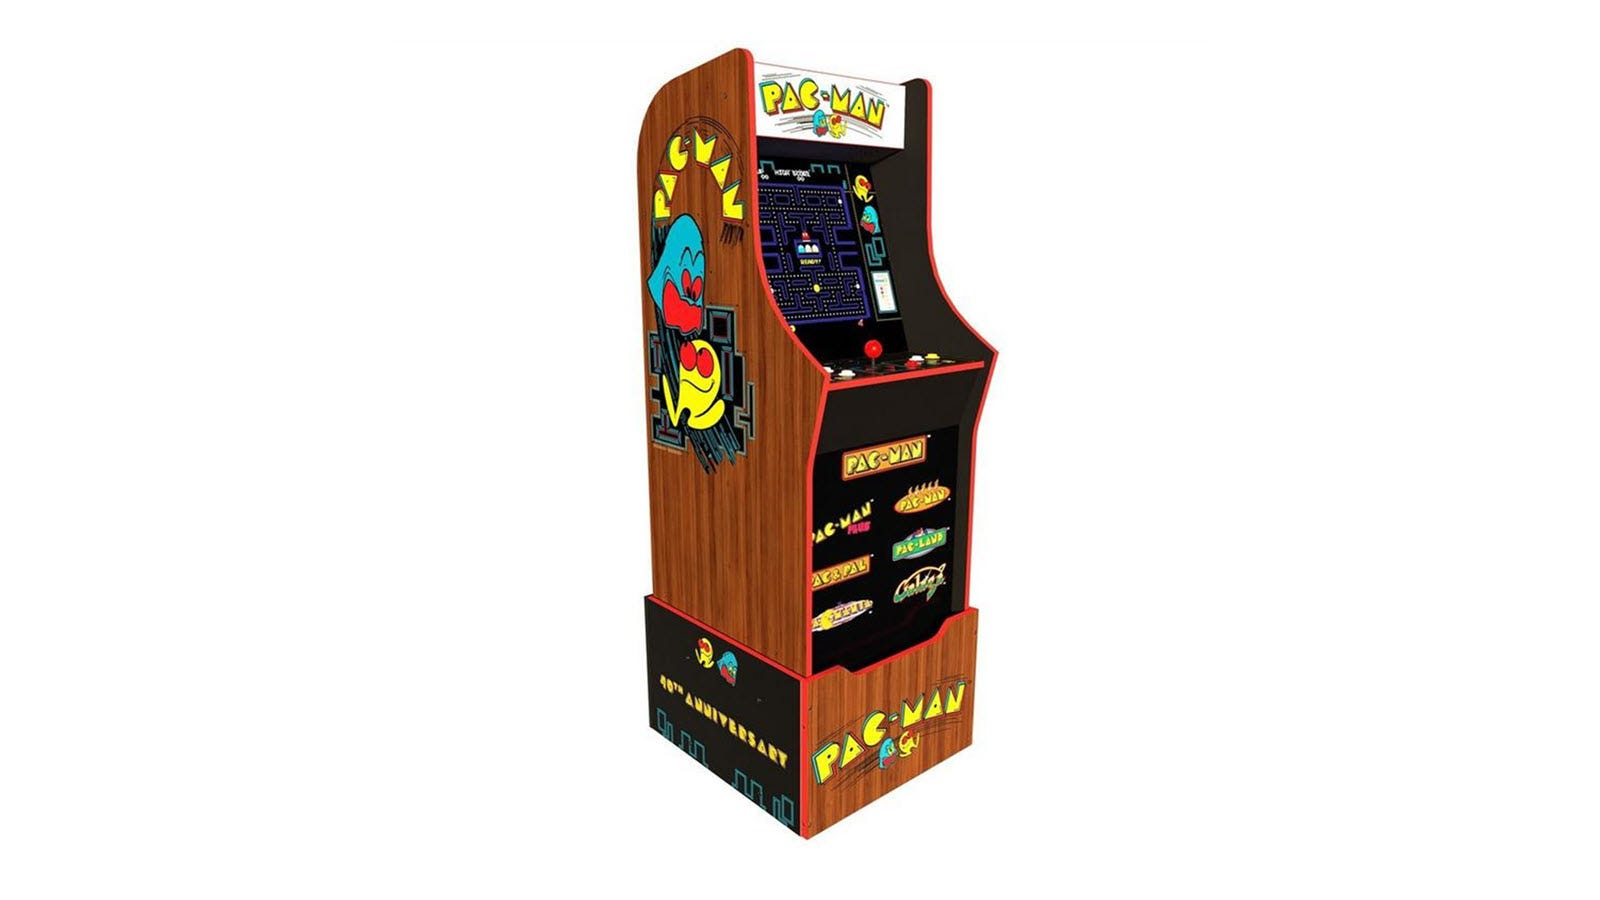 A PAC-MAN 40th Anniversary Edition Arcade1Up machine.